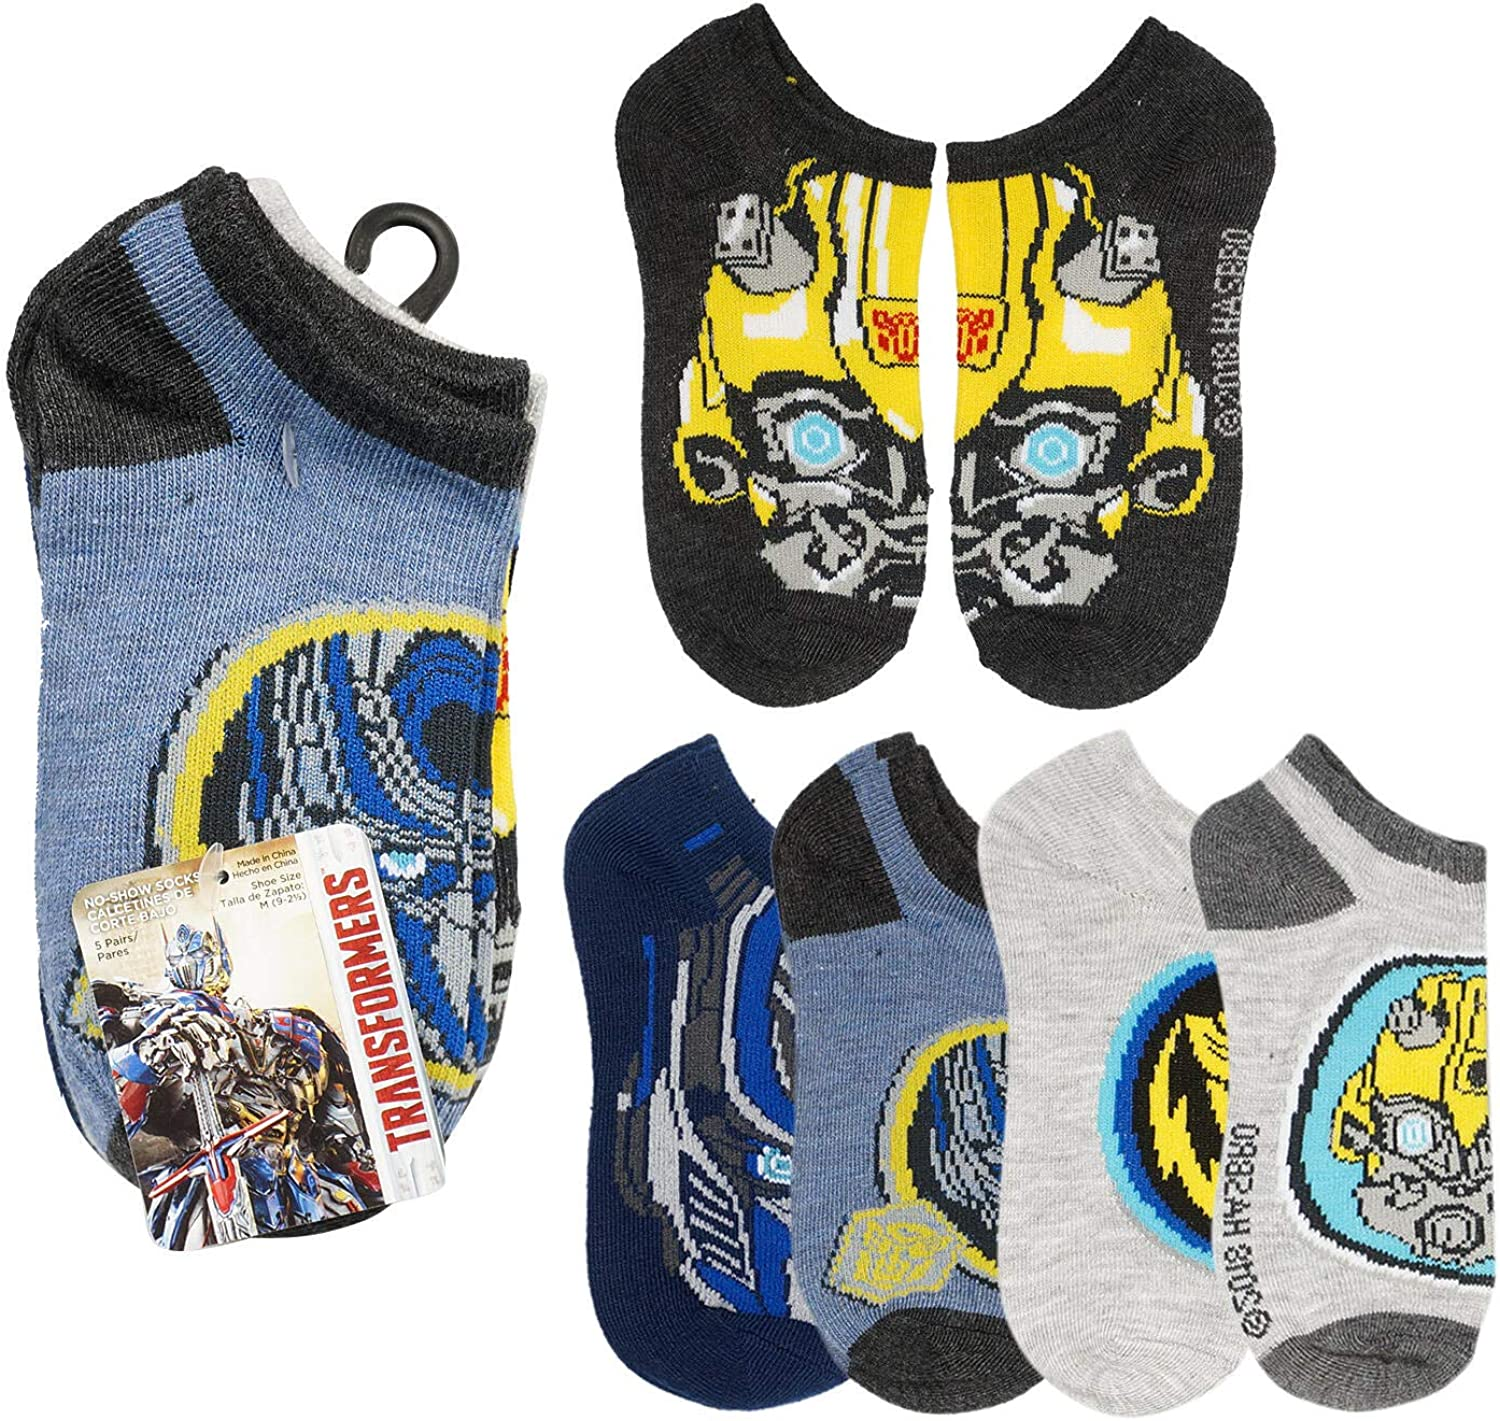 Transformers No-Show Socks for Boys - Size L/G (3-9) - Five Pairs